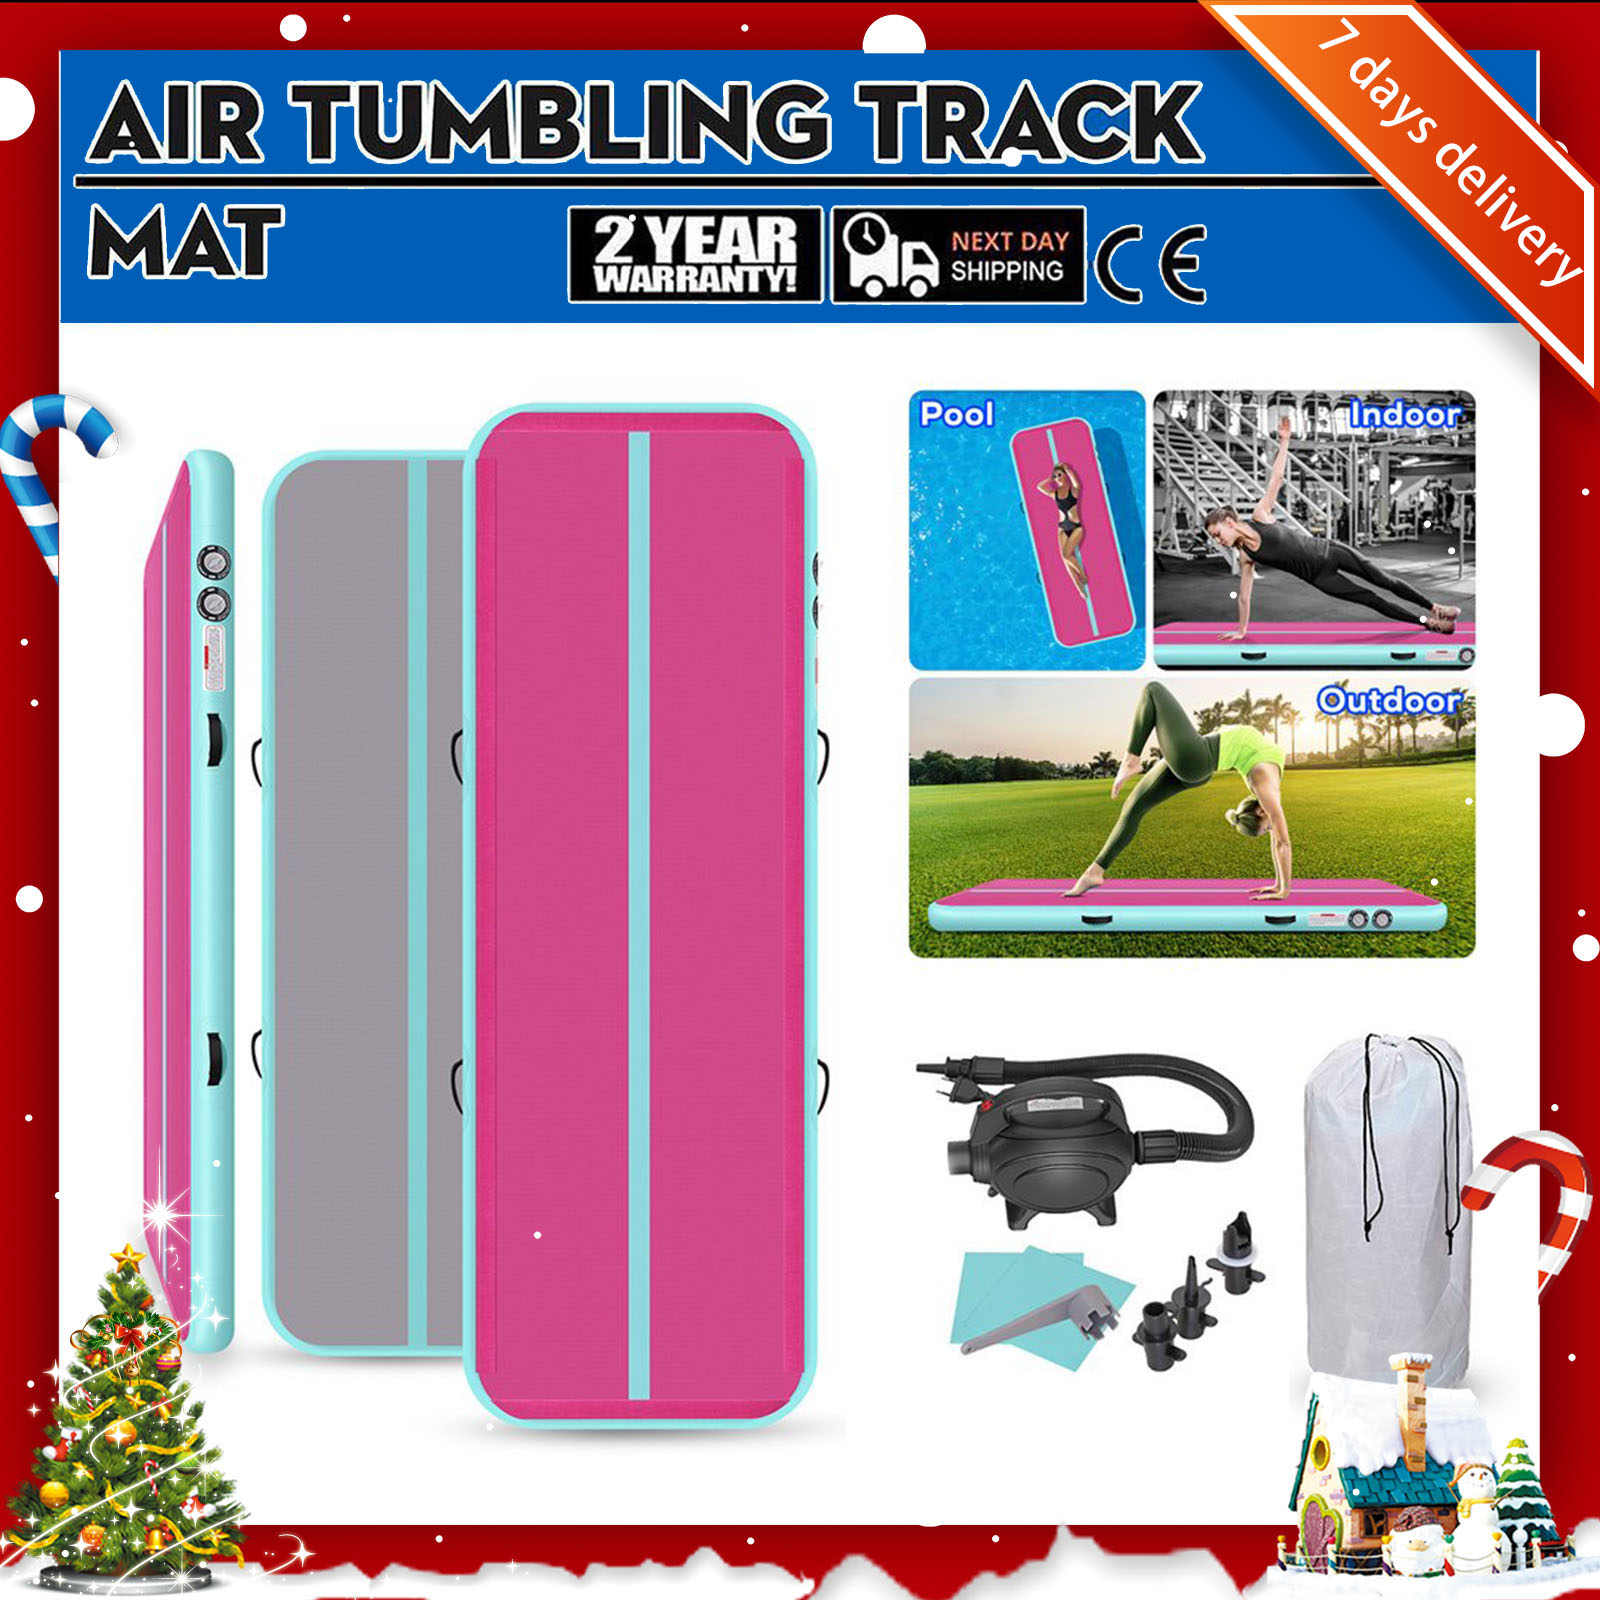 Rimdoc 5M Tumbling Air Track Floor Airtrack Inflatable Use/Training/Cheerleading/Beach Olympics Gym <font><b>Mat</b></font> for <font><b>Kids</b></font> Christmas Gifts image